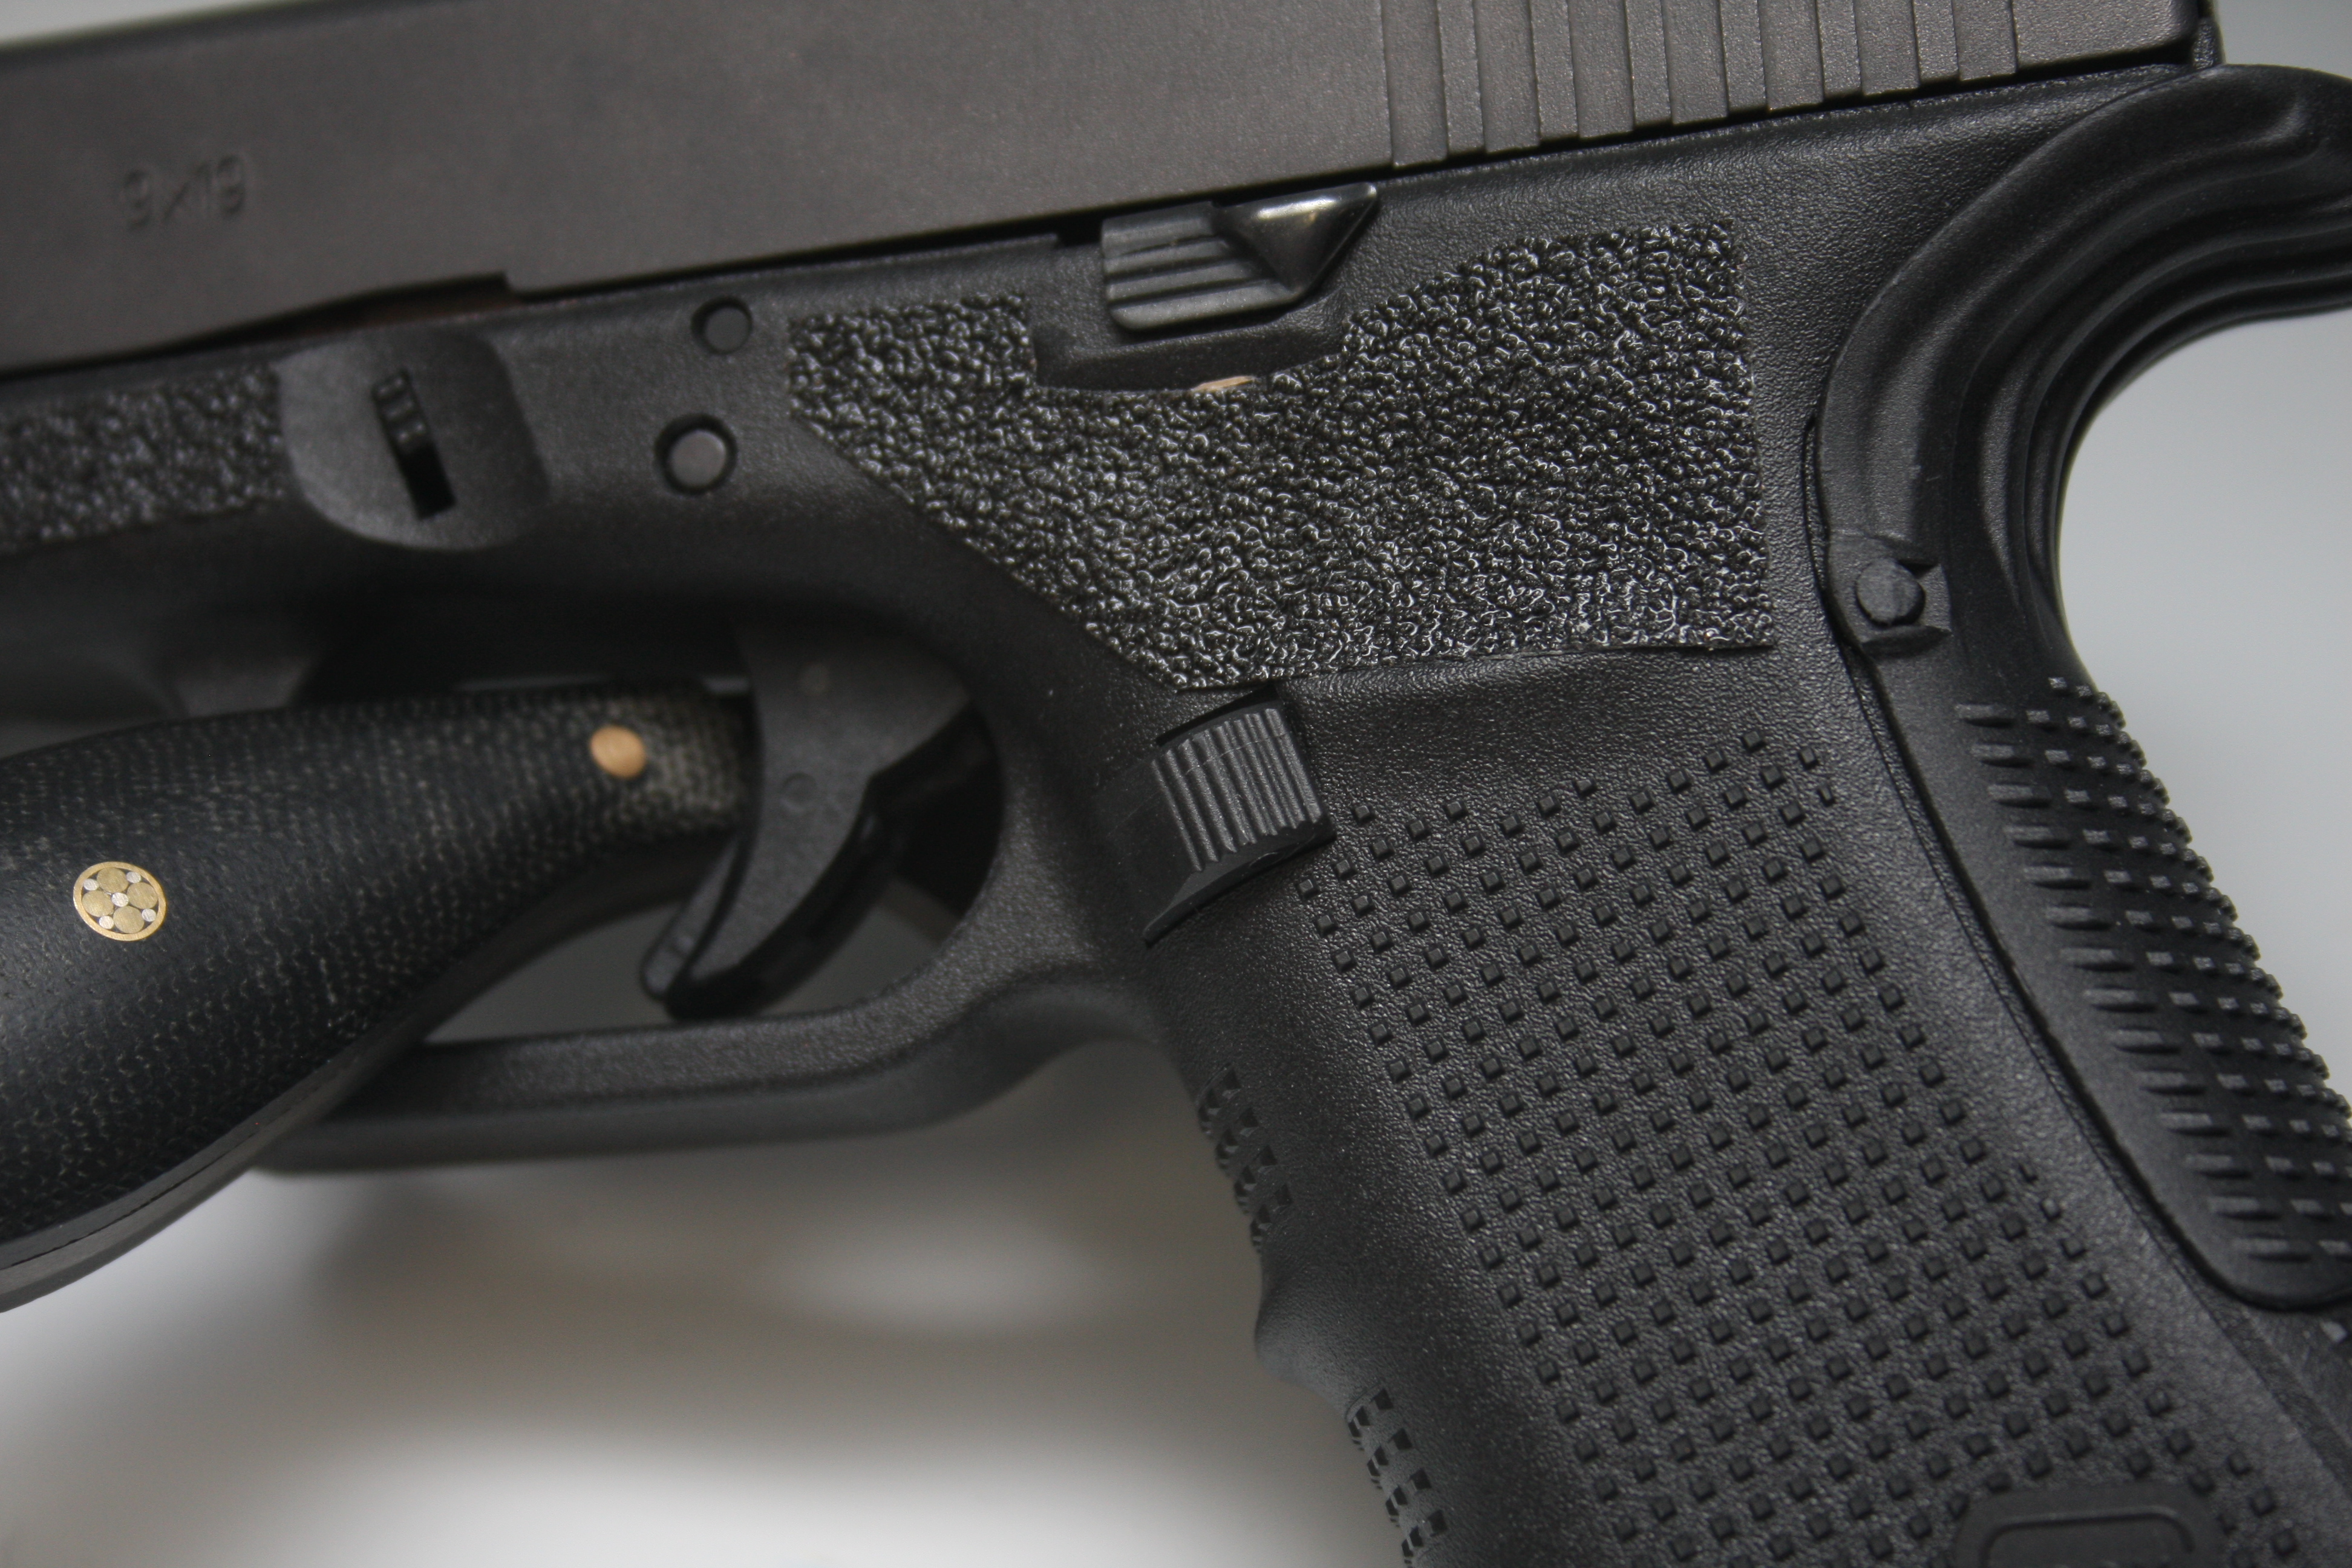 The Tango Down magazine release and the Glock extended slide release make reloading the Glock at speed a little bit easier.